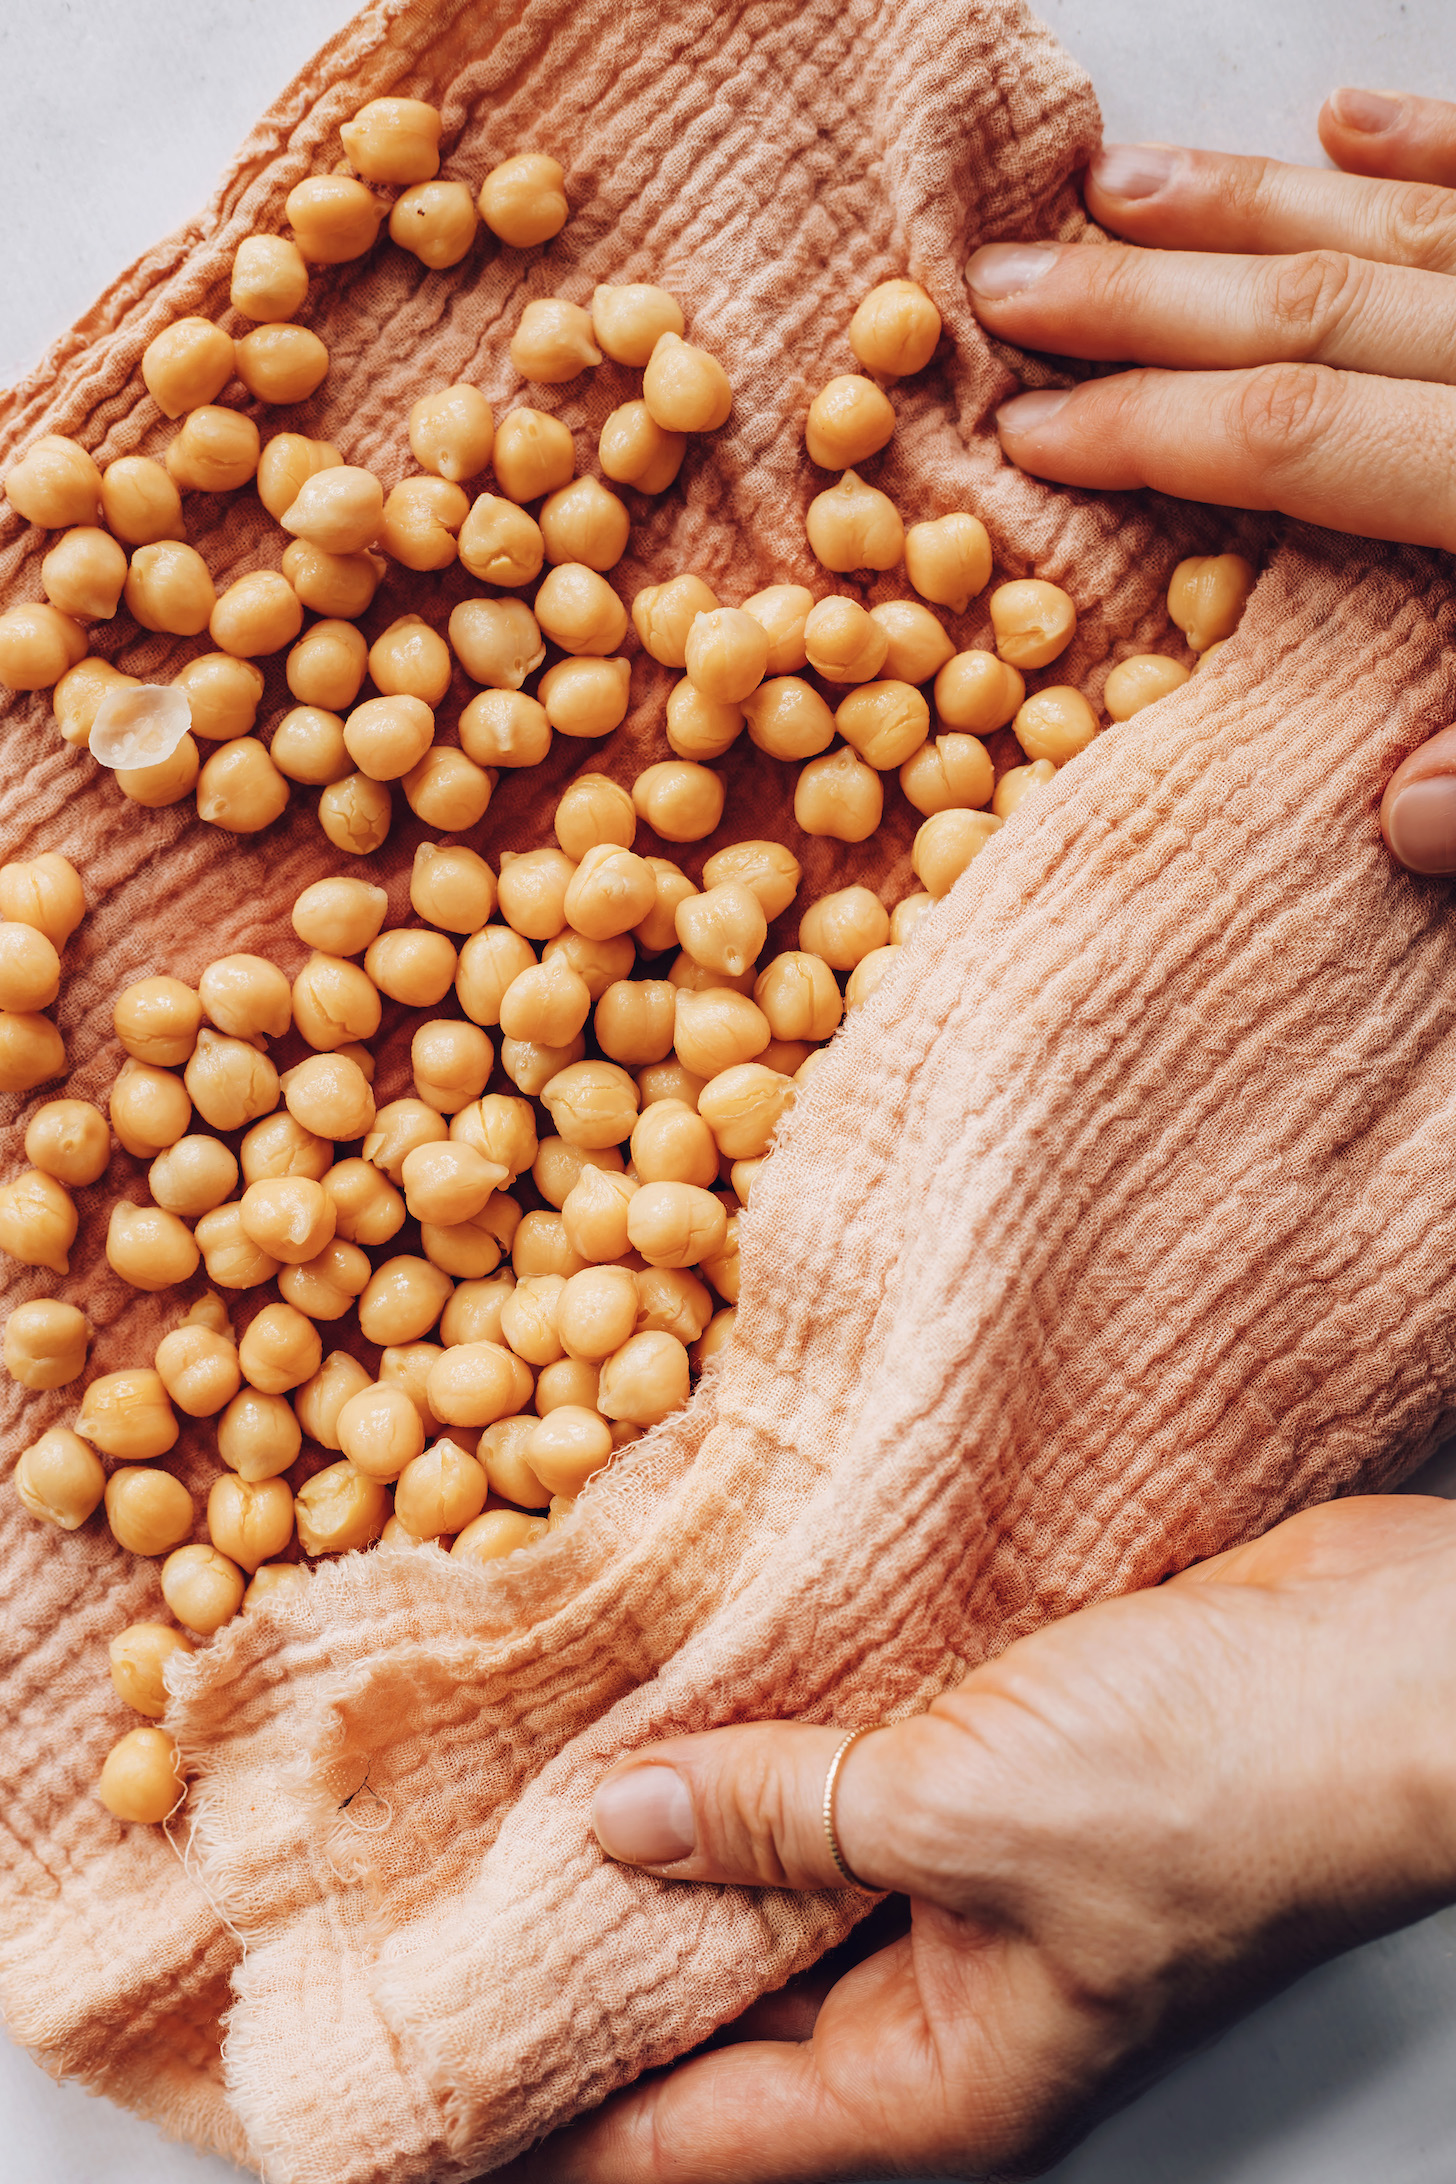 Using a kitchen towel to remove the peels from garbanzo beans